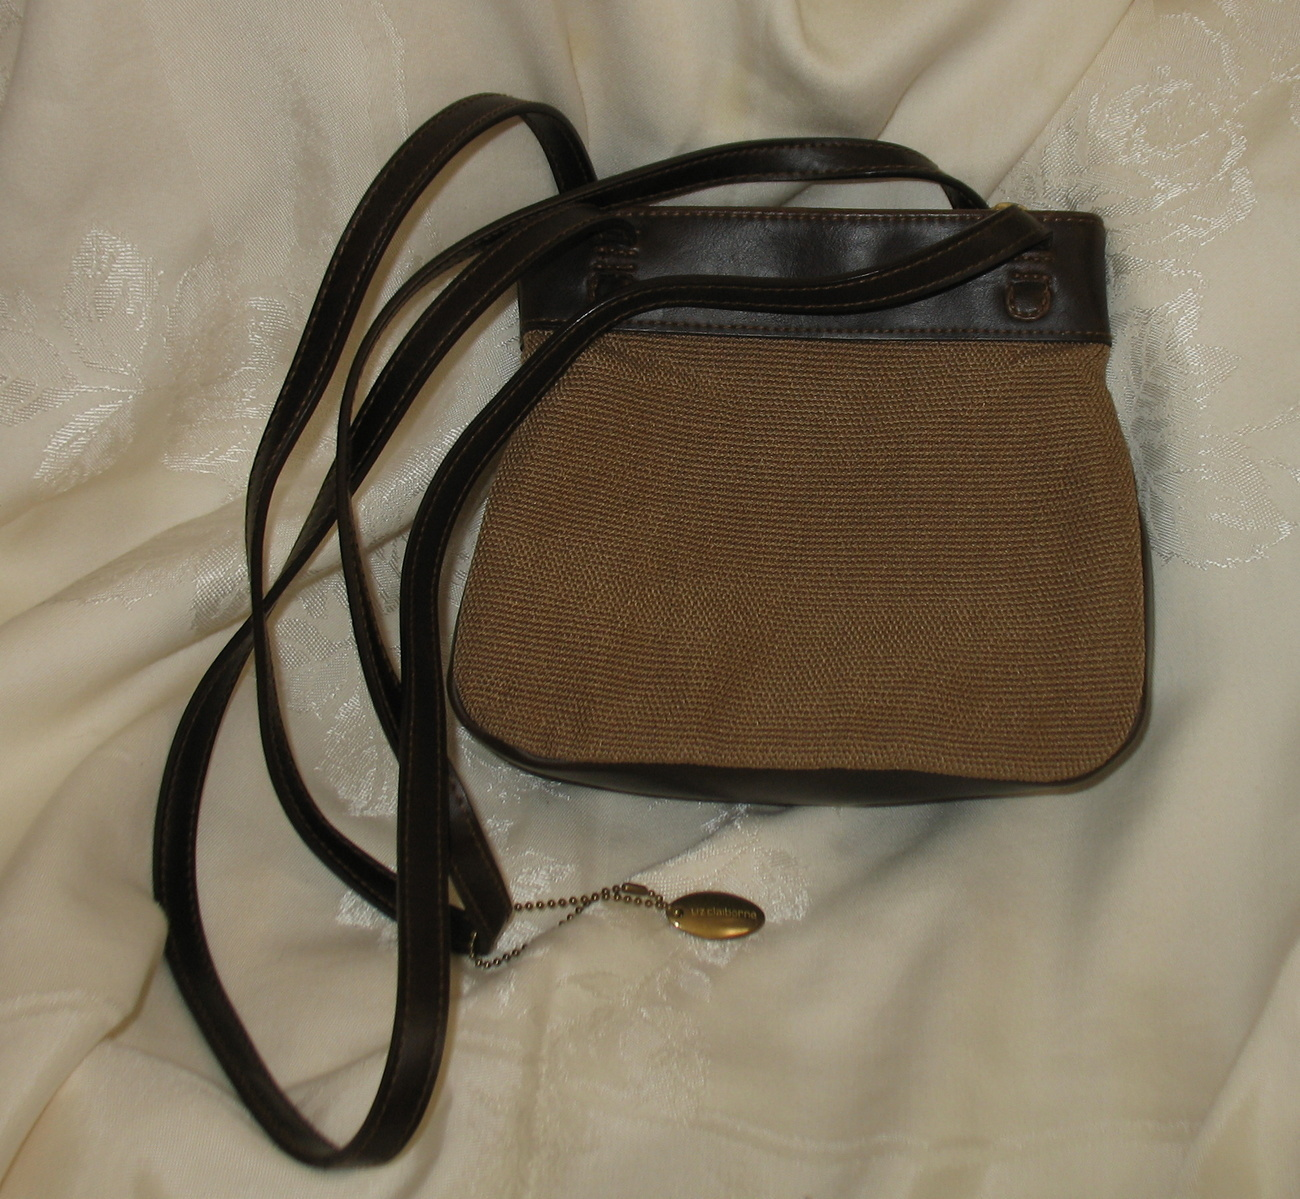 Vintage Liz Claiborne brown/beige Handbag Purse Leather Like